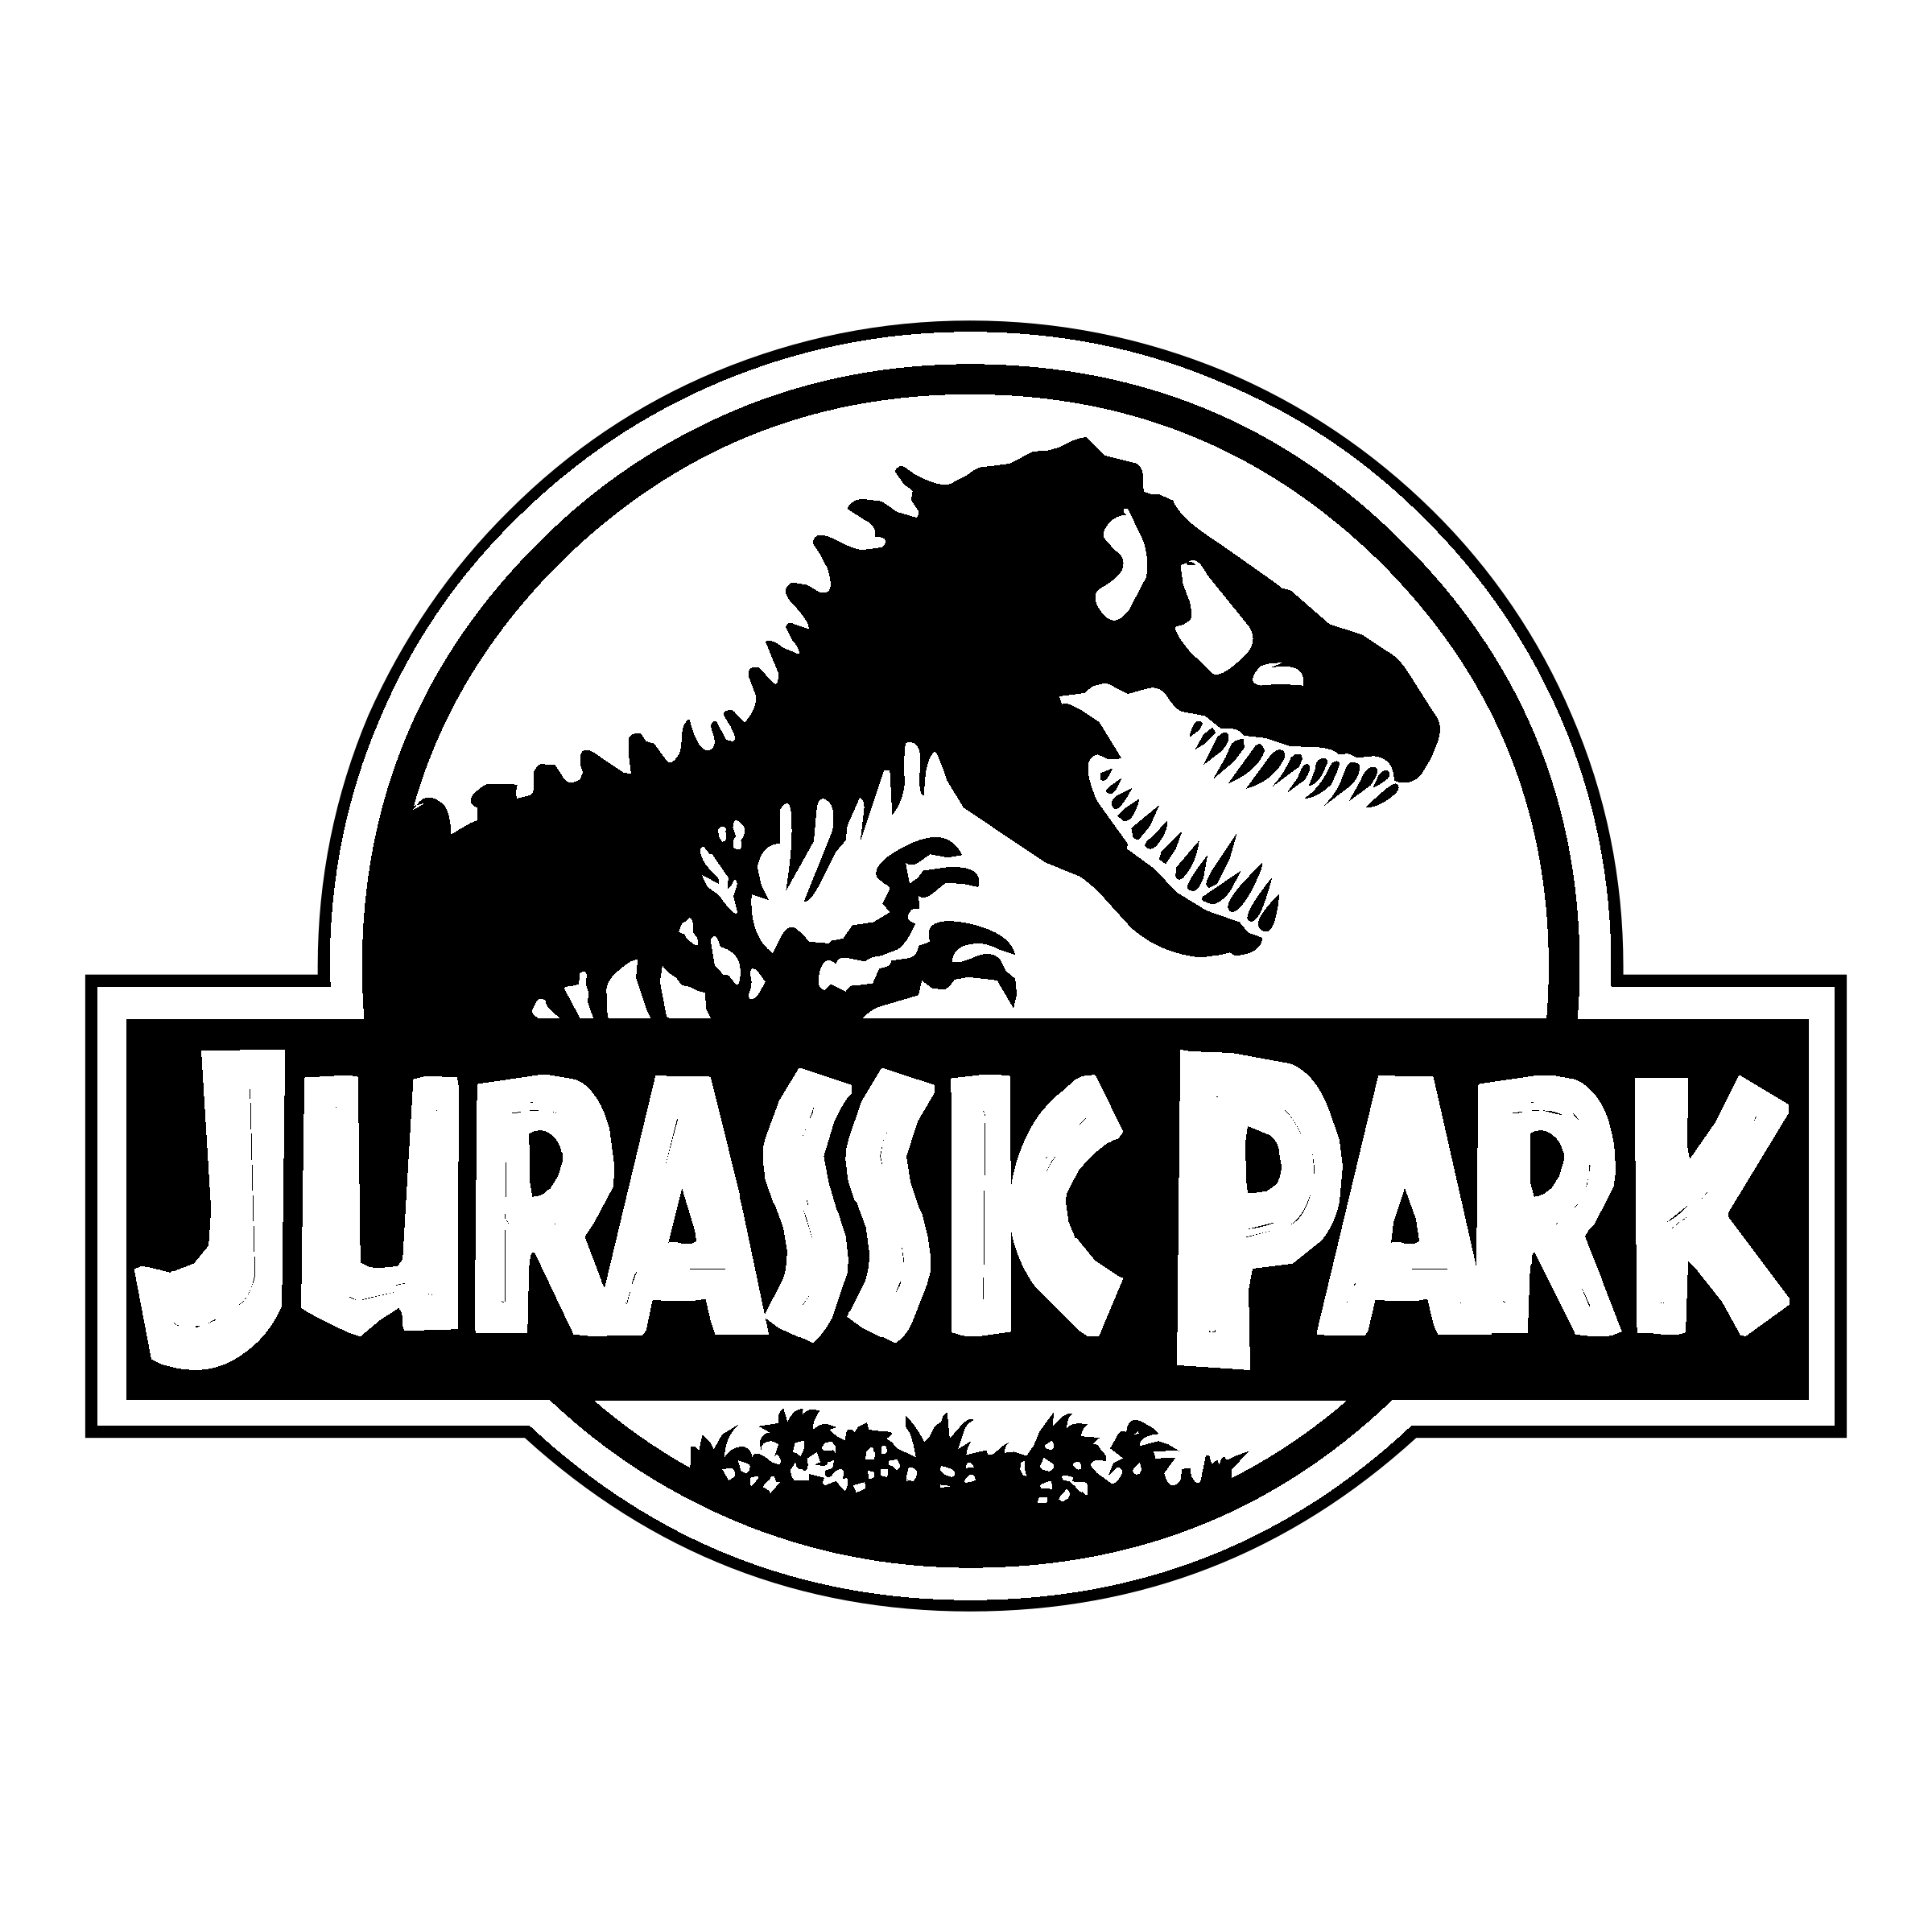 an analysis of the introduction jurassic park I enjoyed your analysis of the theme from jurassic park i was a bit surprised that you did not include any references to the english symphonic style of the late 19th century/early 20th century, especially williams' use of gustav holst's orchestrational and harmonic style in the planets.